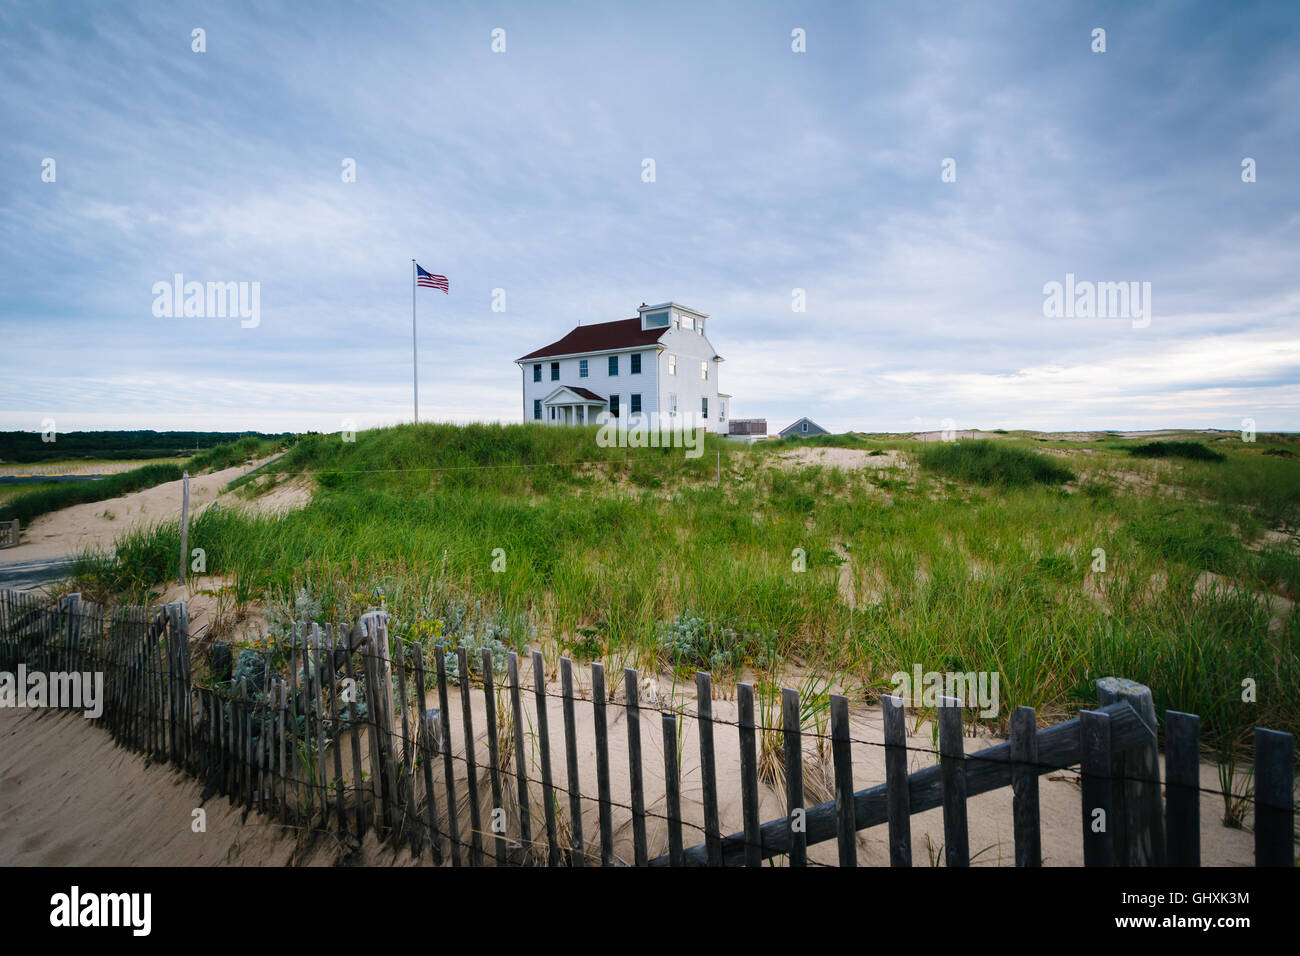 Fence and house at  Race Point, in the Province Lands at Cape Cod National Seashore, Massachusetts. - Stock Image